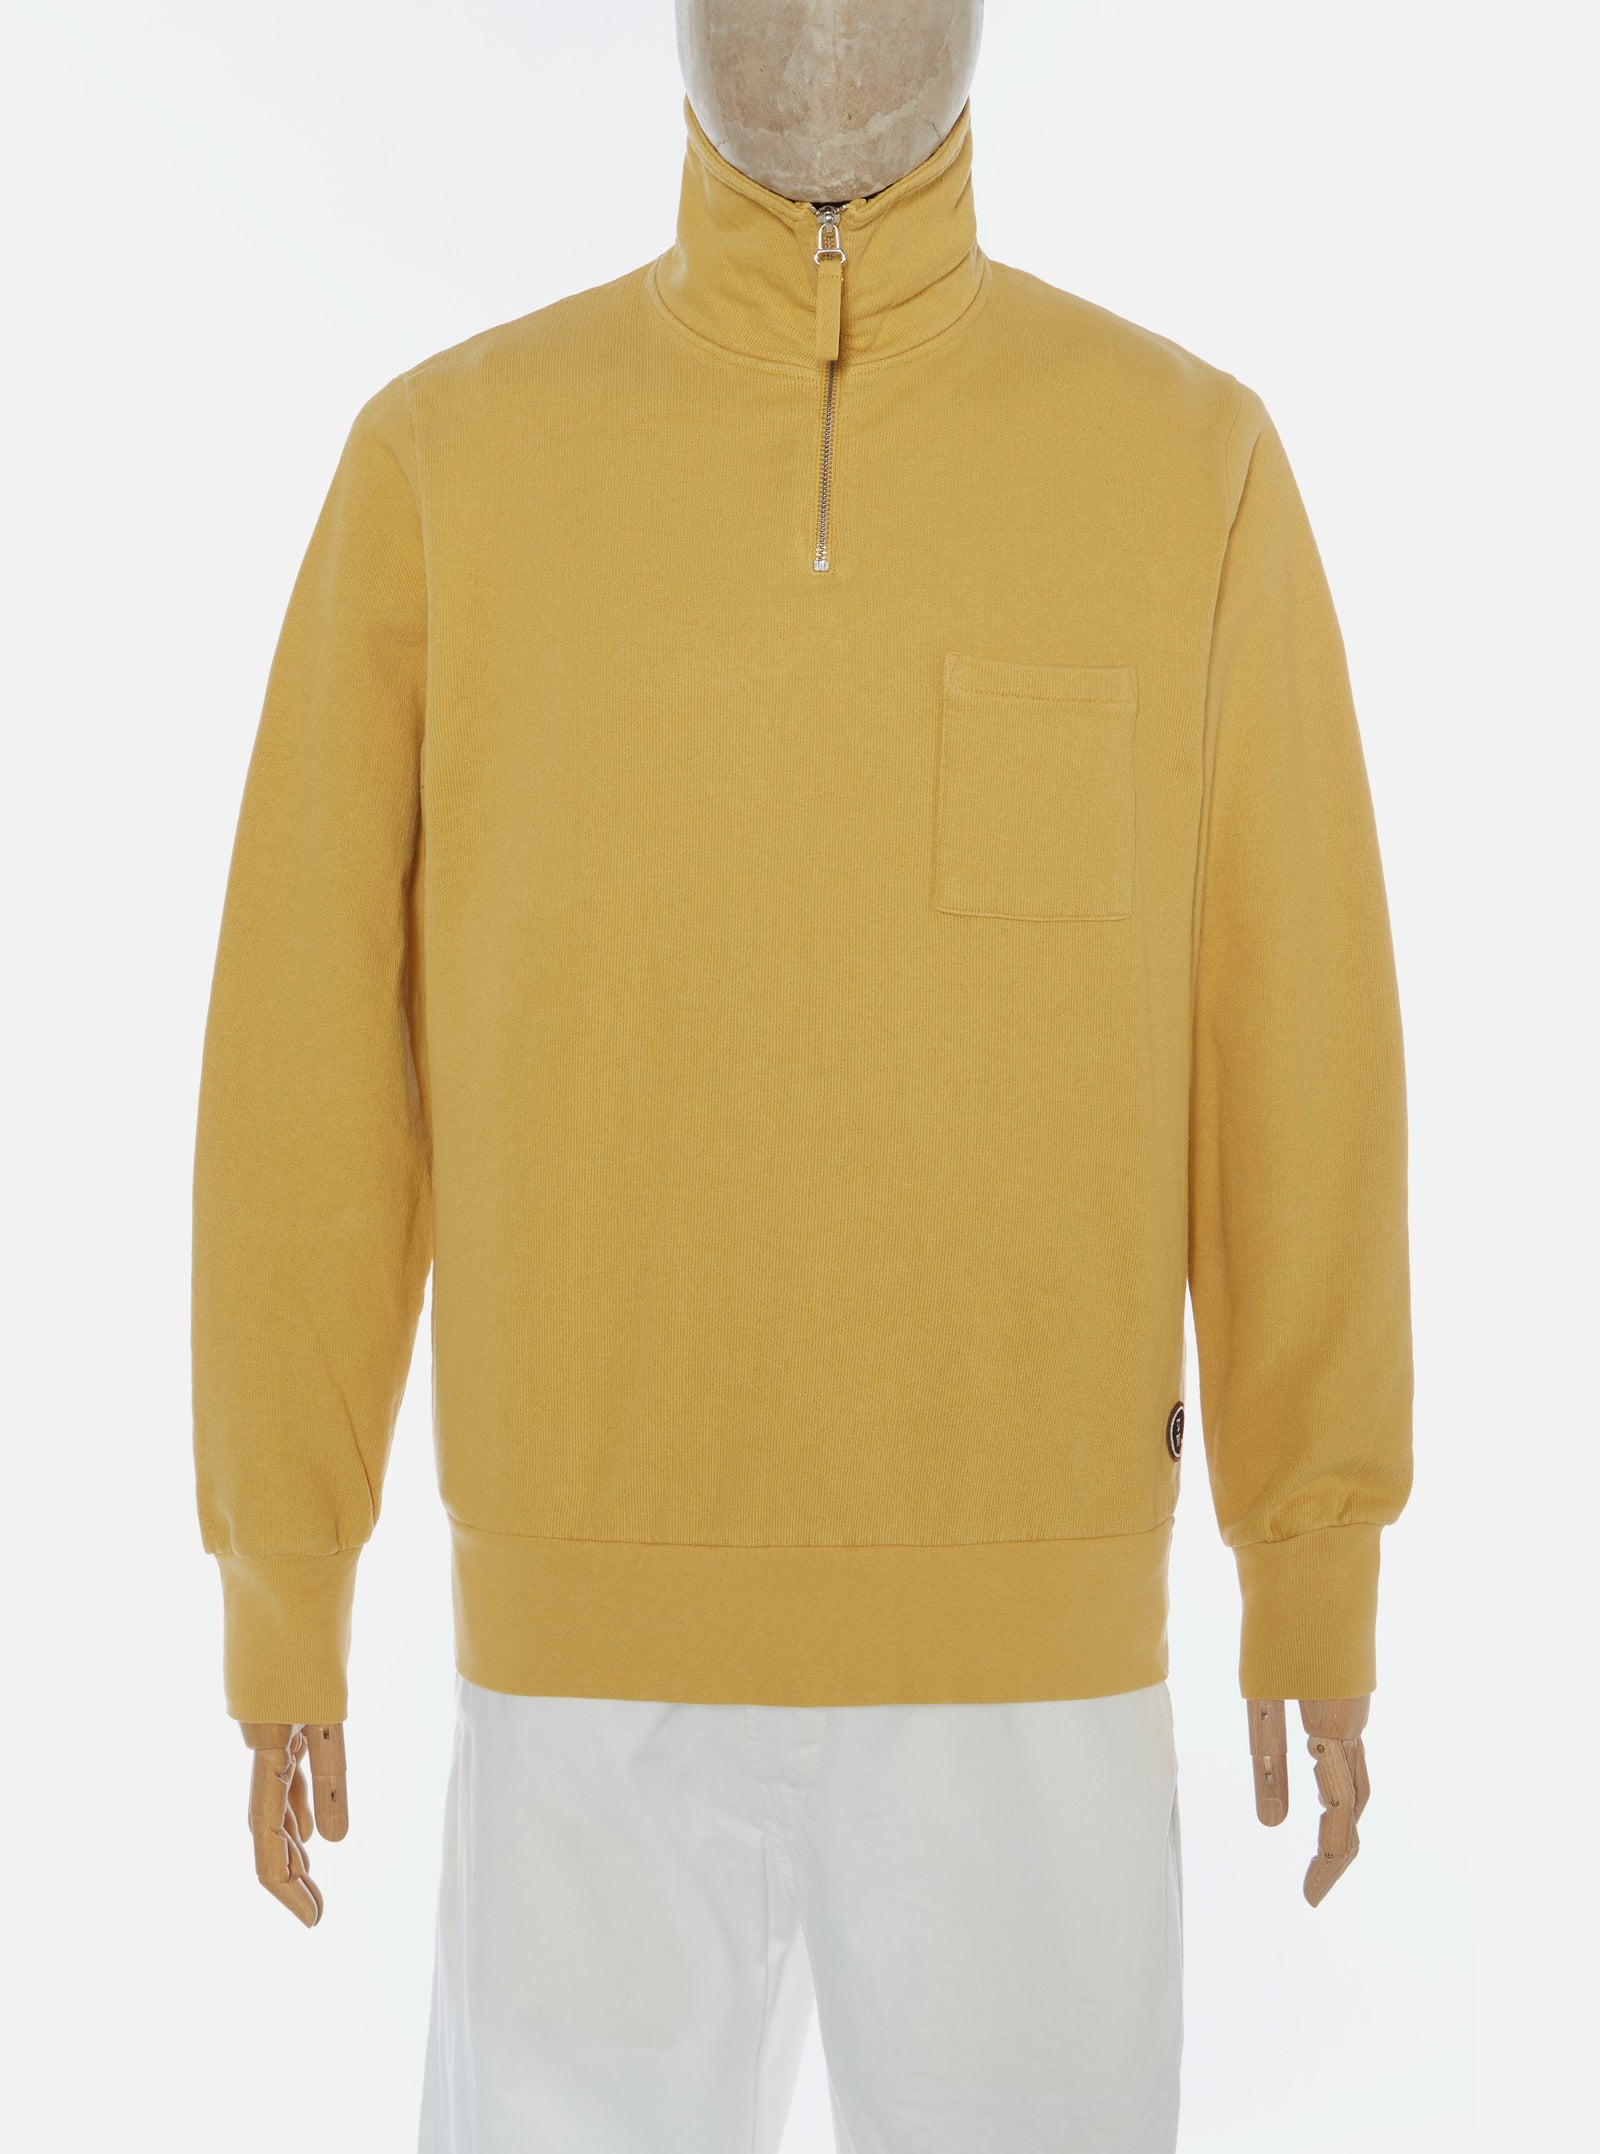 Universal Works Half Zip Sweatshirt in Gold Dry Handle Loopback